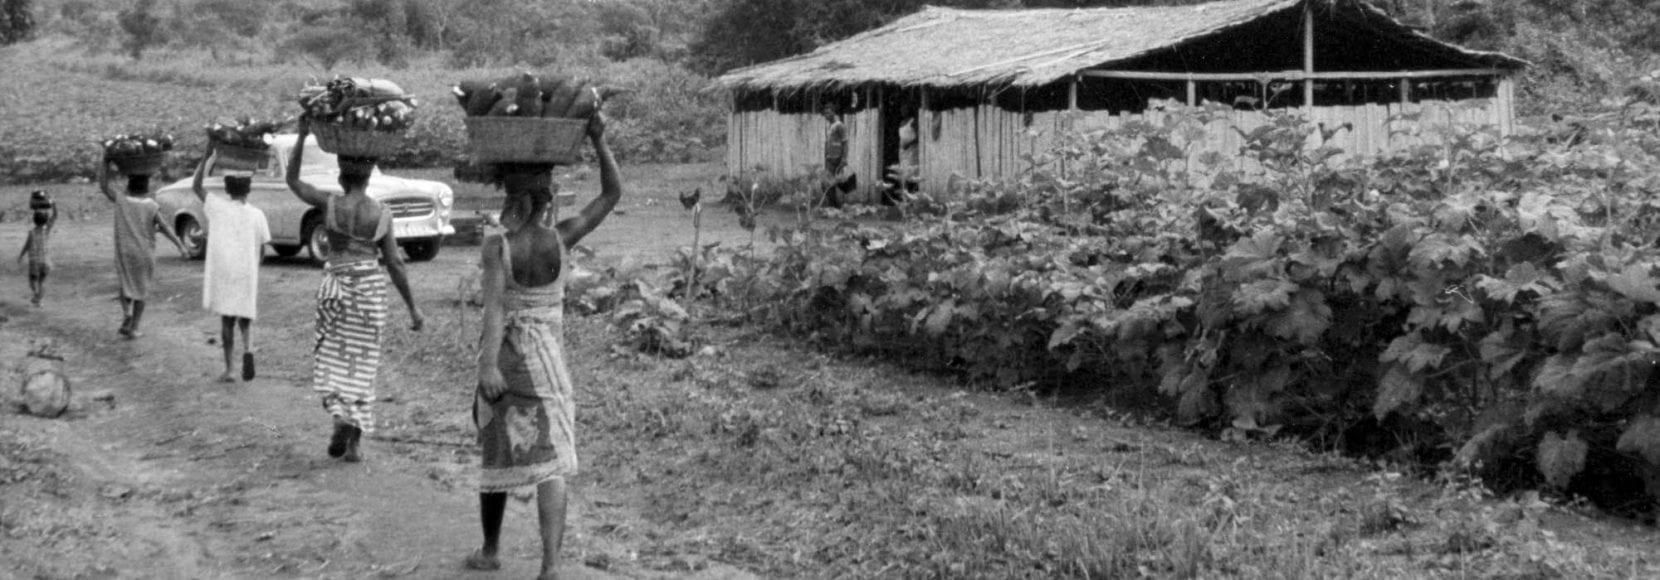 """TechnoServe's origin traces back to the village of Adidome, Ghana. In 1968, Ed Bullard launched TechnoServe – short for """"technology in the service of mankind."""